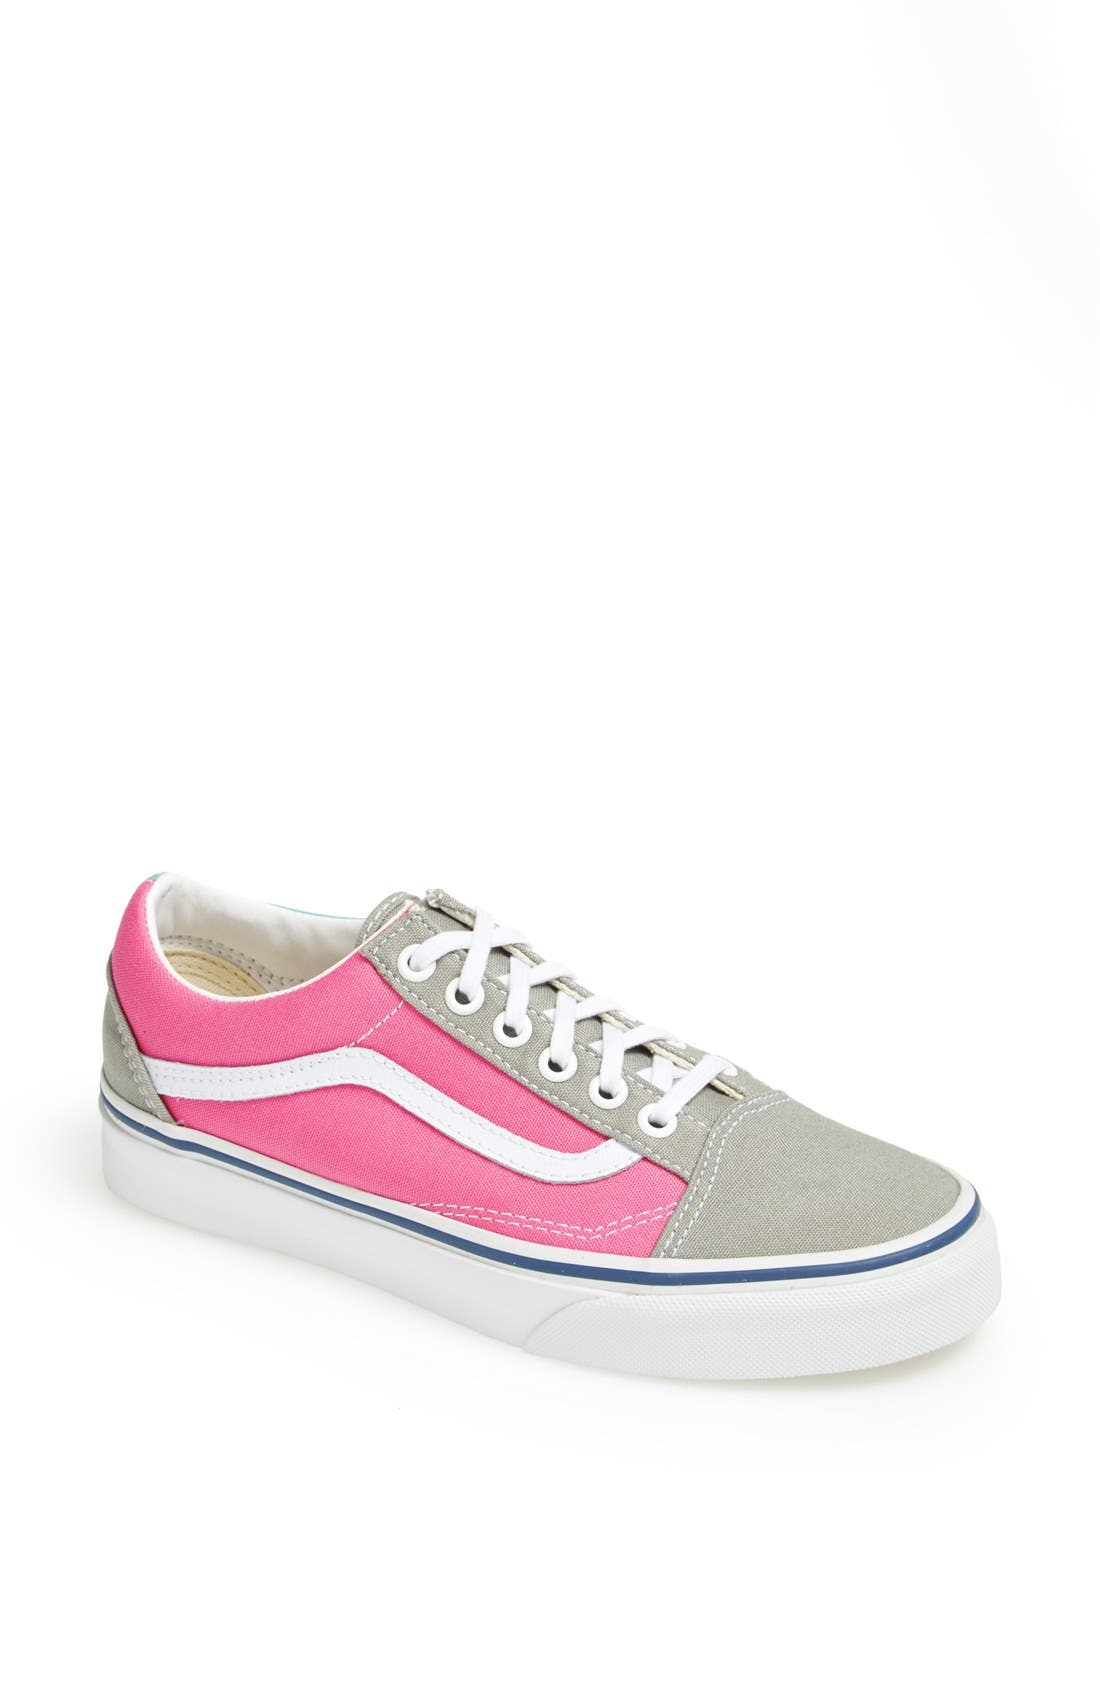 Alternate Image 1 Selected - Vans 'Old Skool' Sneaker (Women)